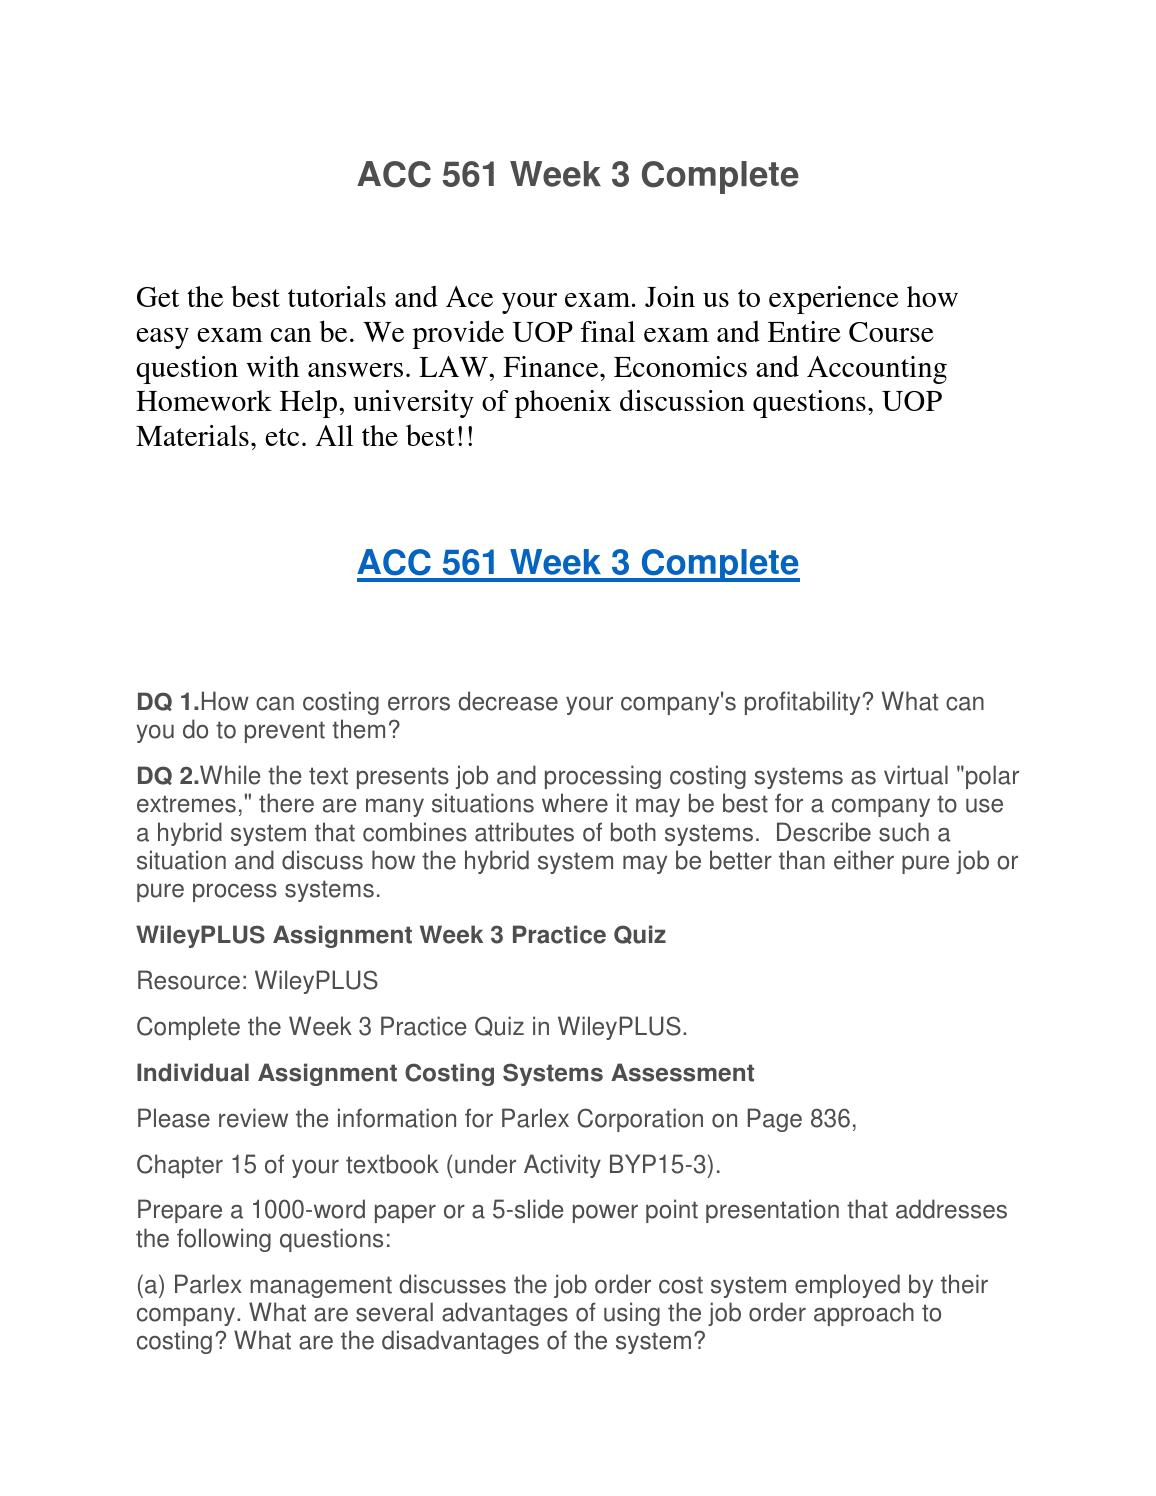 ACC 561 Week 4 Assignment WileyPLUS - Latest